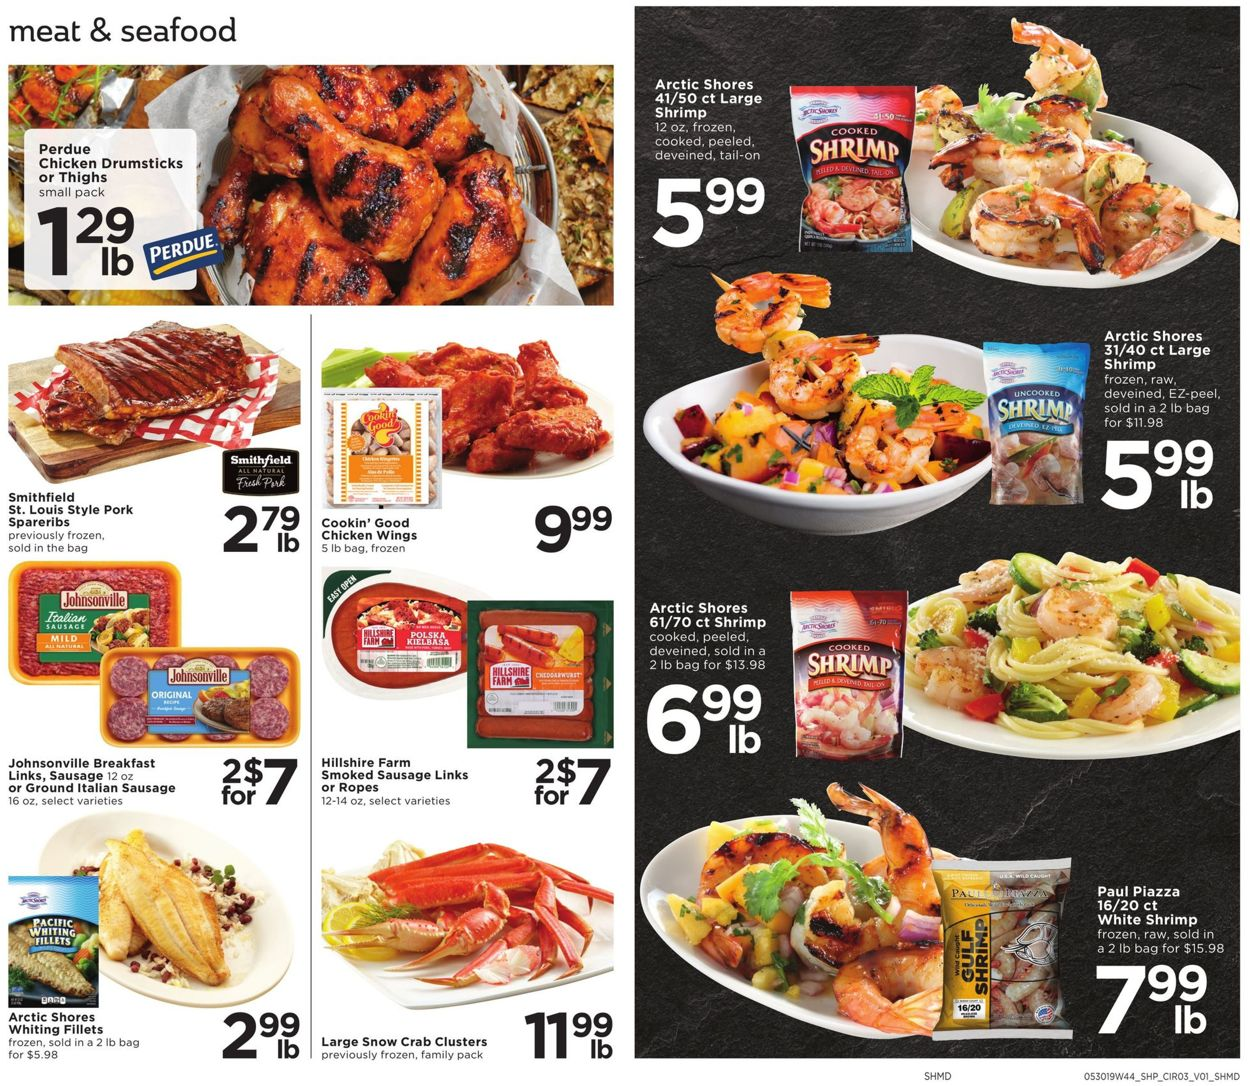 Shoppers Flyer - 05/30-06/05/2019 (Page 3)